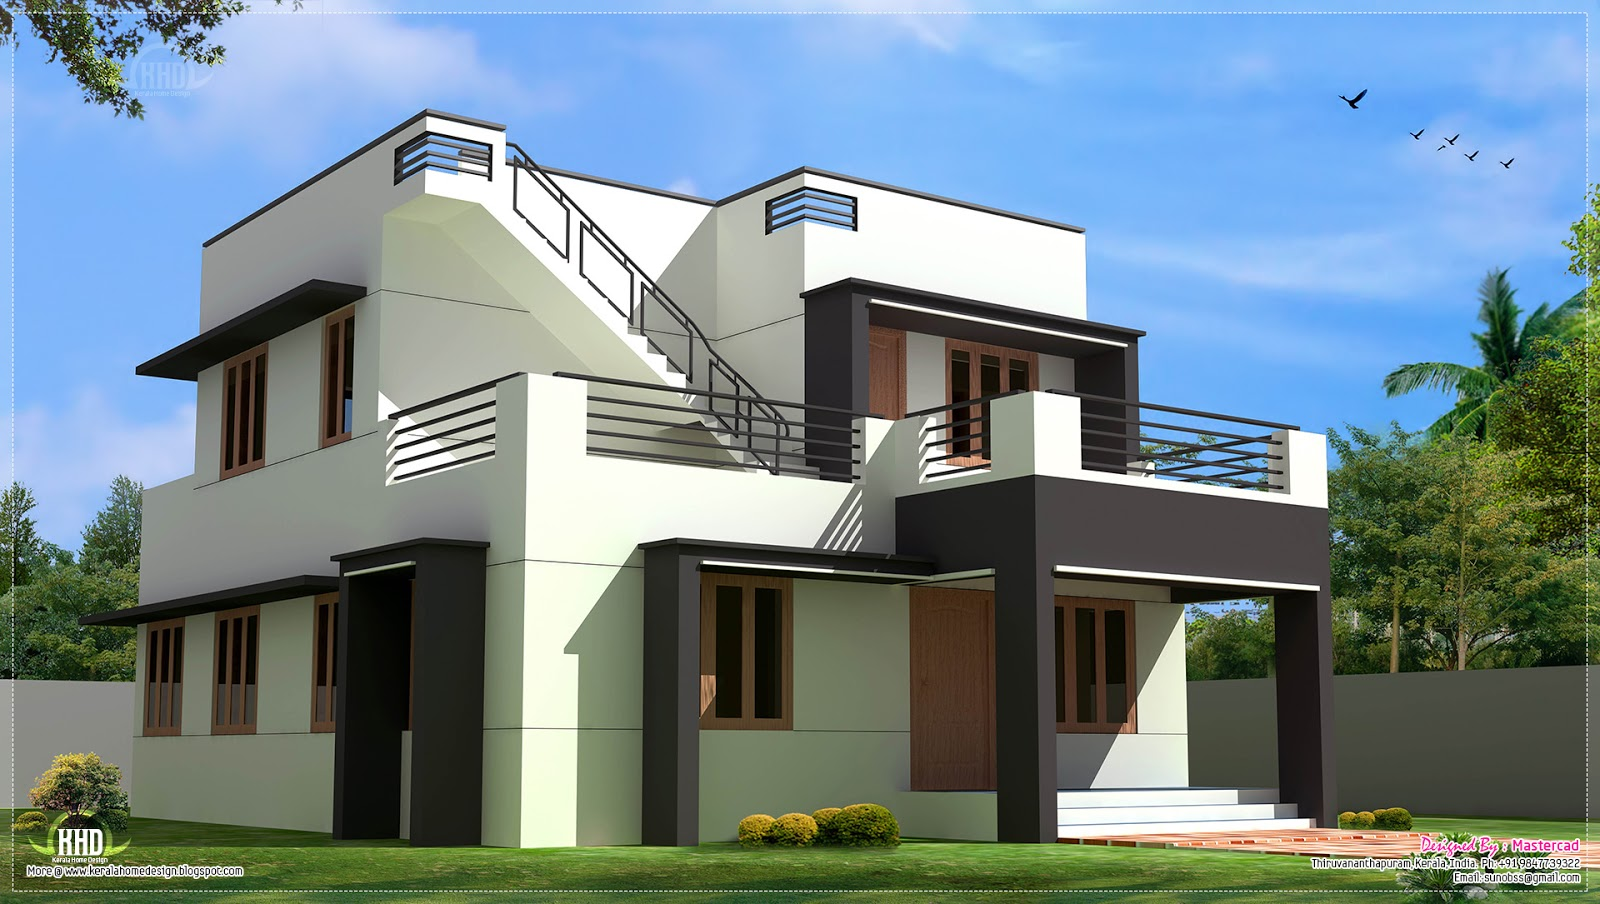 Modern house design in 1700 kerala home design for New home designs 2015